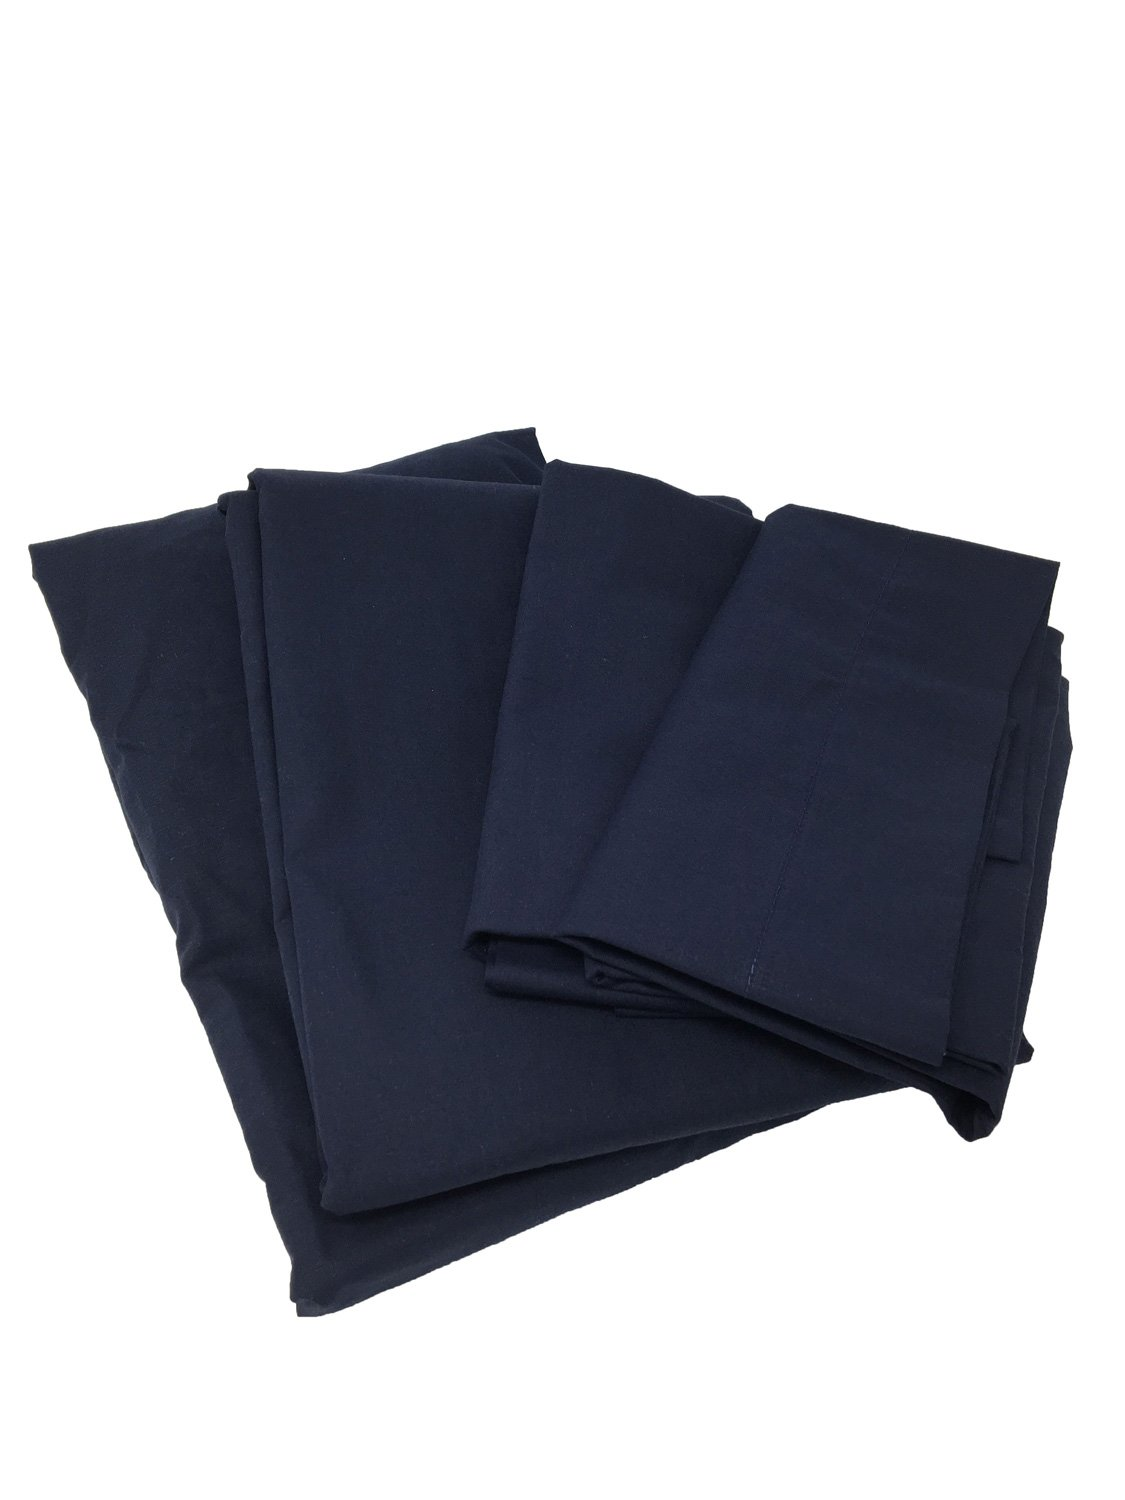 Cot Sheets (Fitted, Flat, Sets), 4 Piece Cot Sheet and Pillow Case Set - Navy- 1 cot fitted sheet 33'' x 75'', 1 cot flat sheet 64''x94'', 2 pillow cases 20''x30''